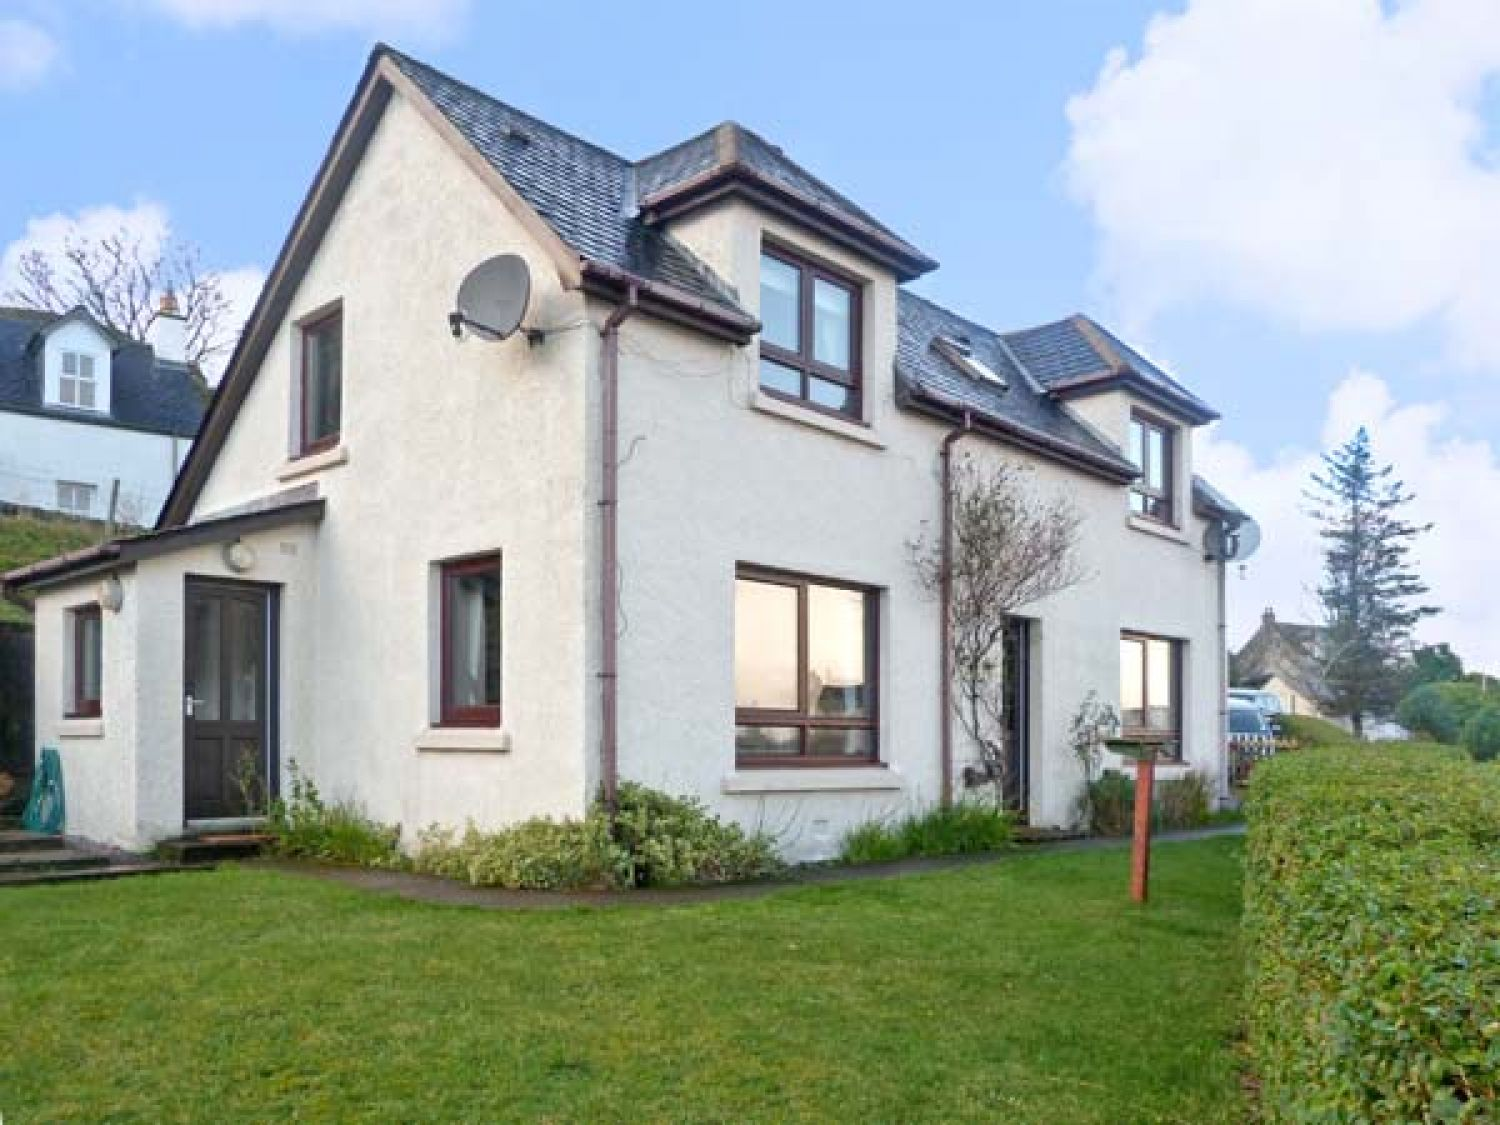 Pool house poolewe midtown self catering holiday cottage - Scotland holiday homes with swimming pool ...